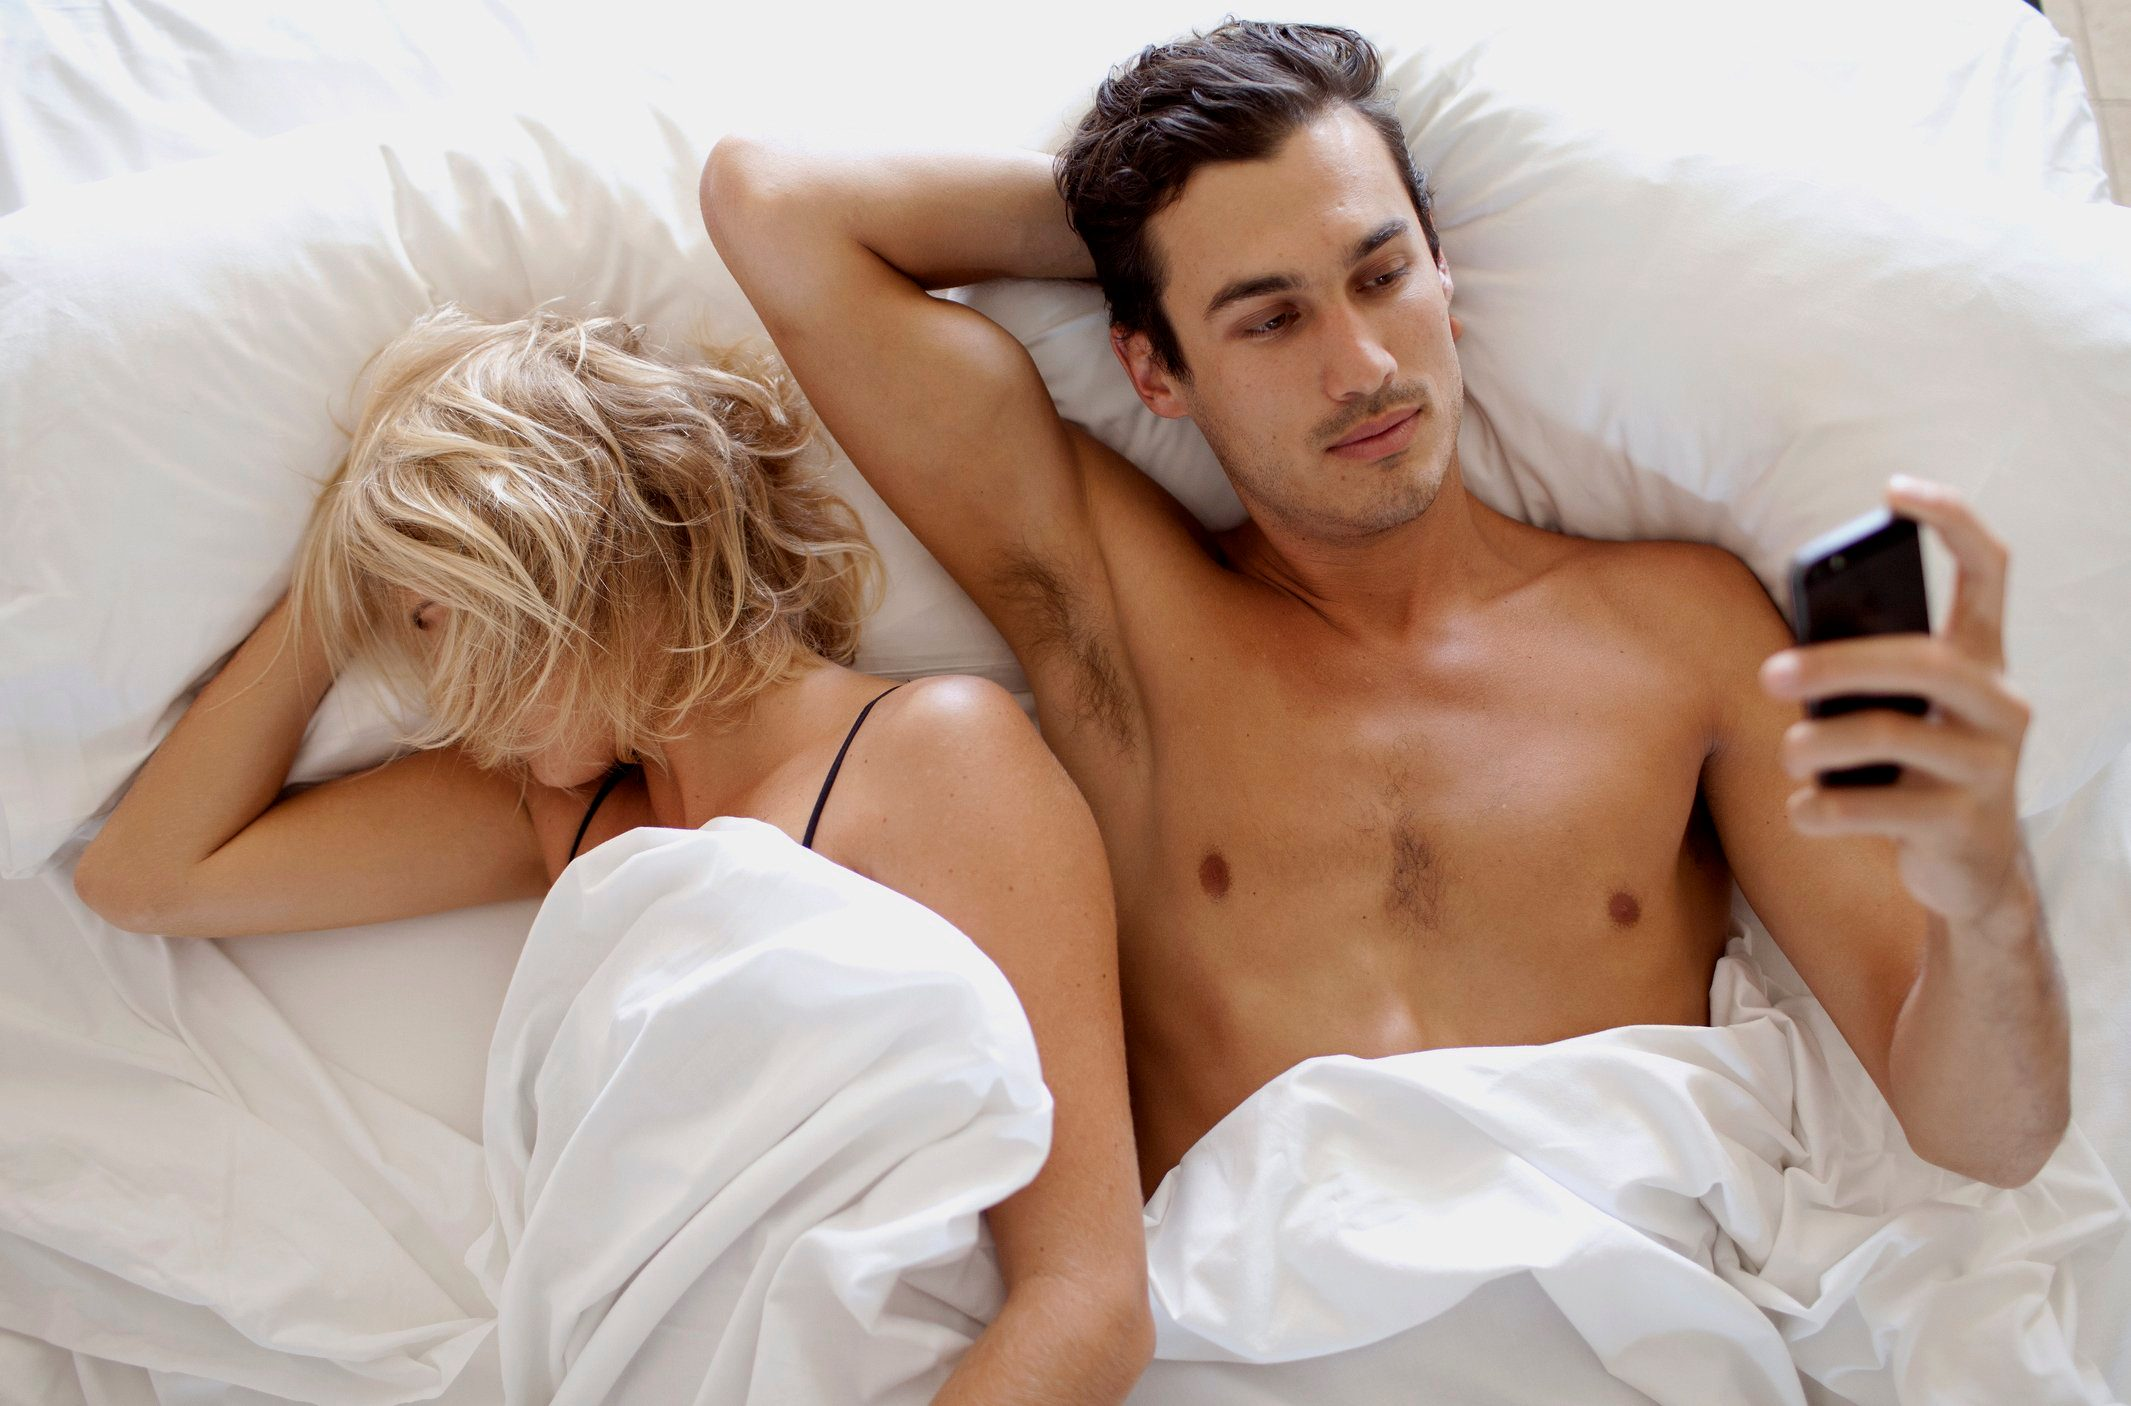 sex mistakes | man looking at phone in bed with woman